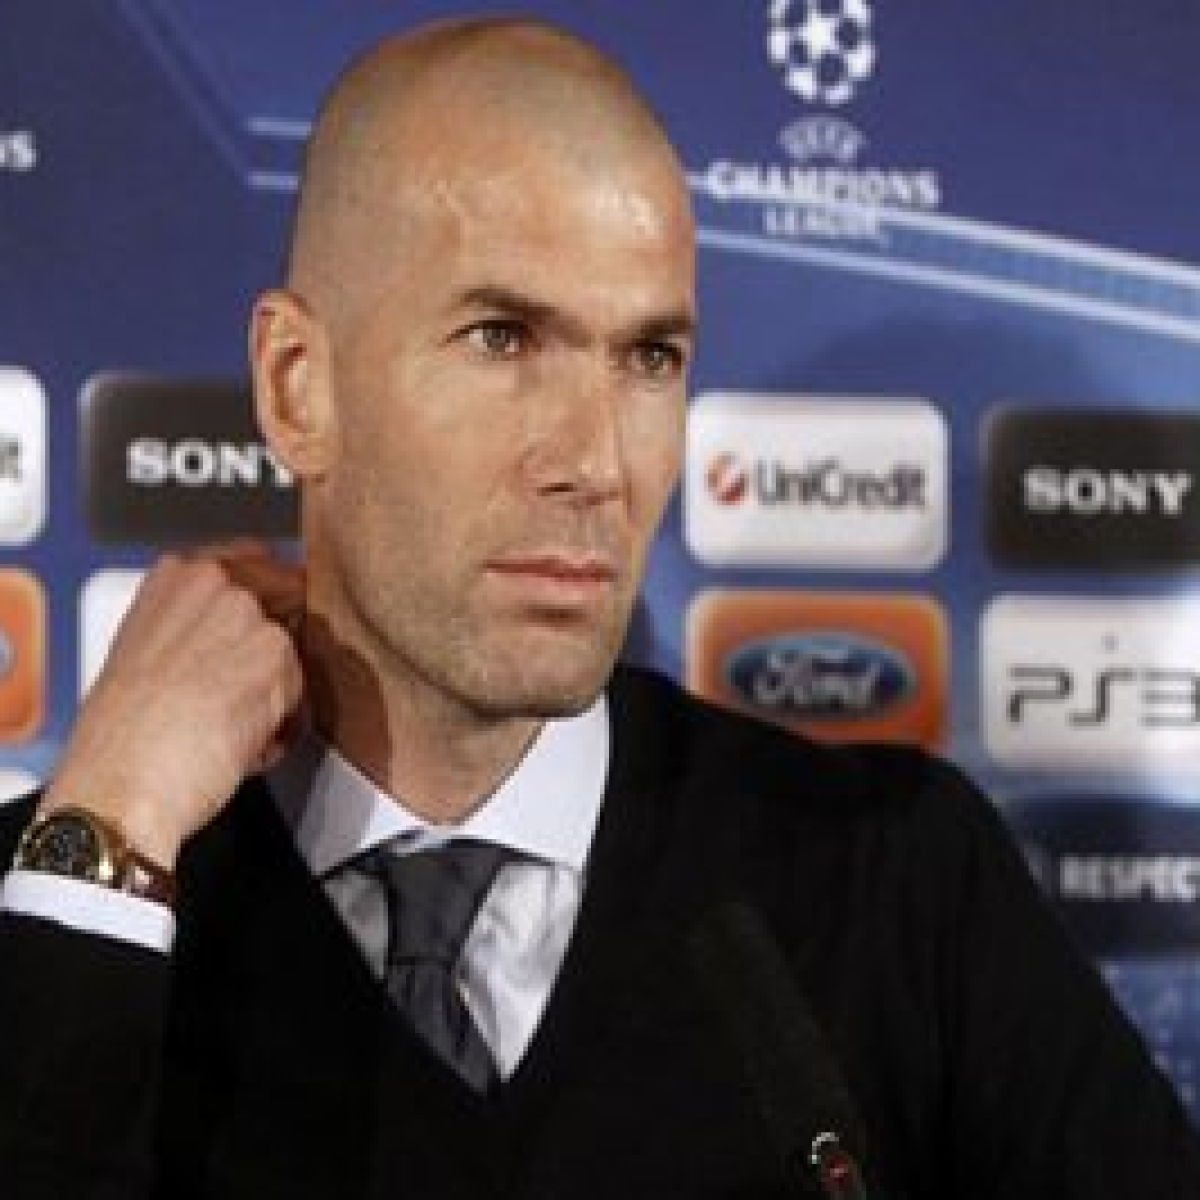 Champions League: Fans call for Zidane's sacking after Real Madrid suffer 2-0 loss against Shakhtar Donetsk